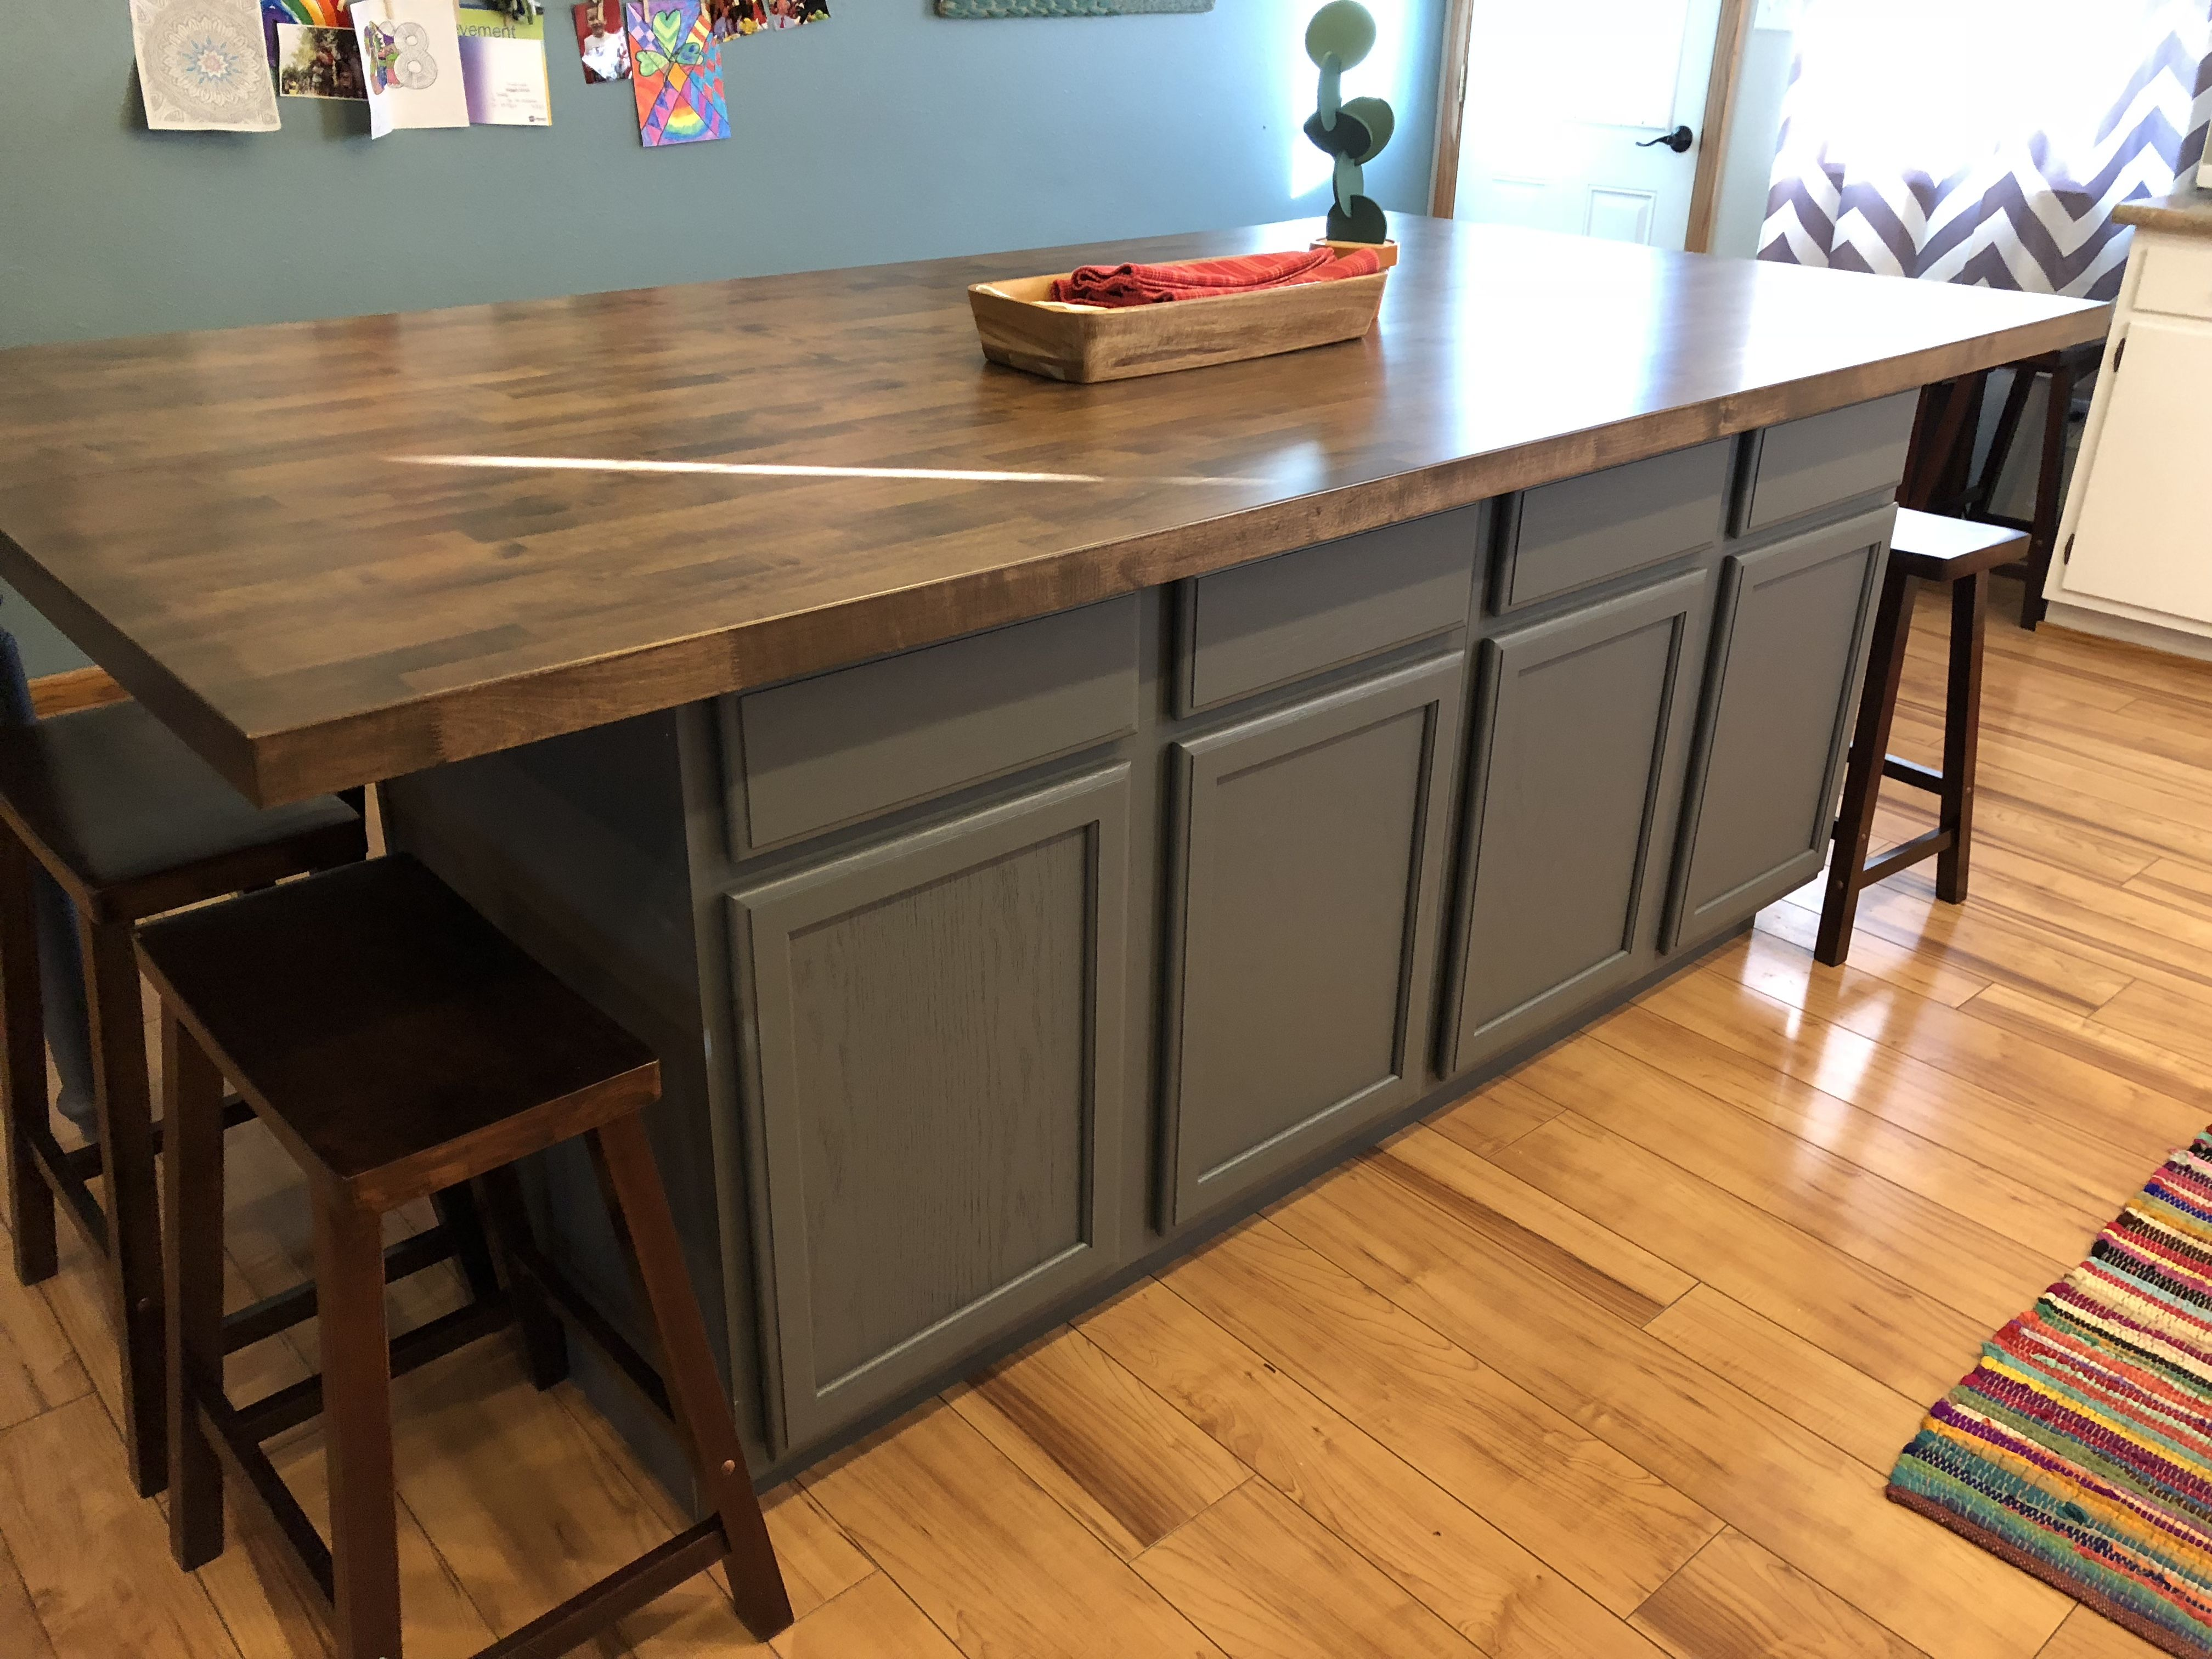 Diy Kitchen Island Made With Stock Base Cabinets And Butcher Block Top Paint Color P Diy Kitchen Island Small Kitchen Island Kitchen Island Table Combination